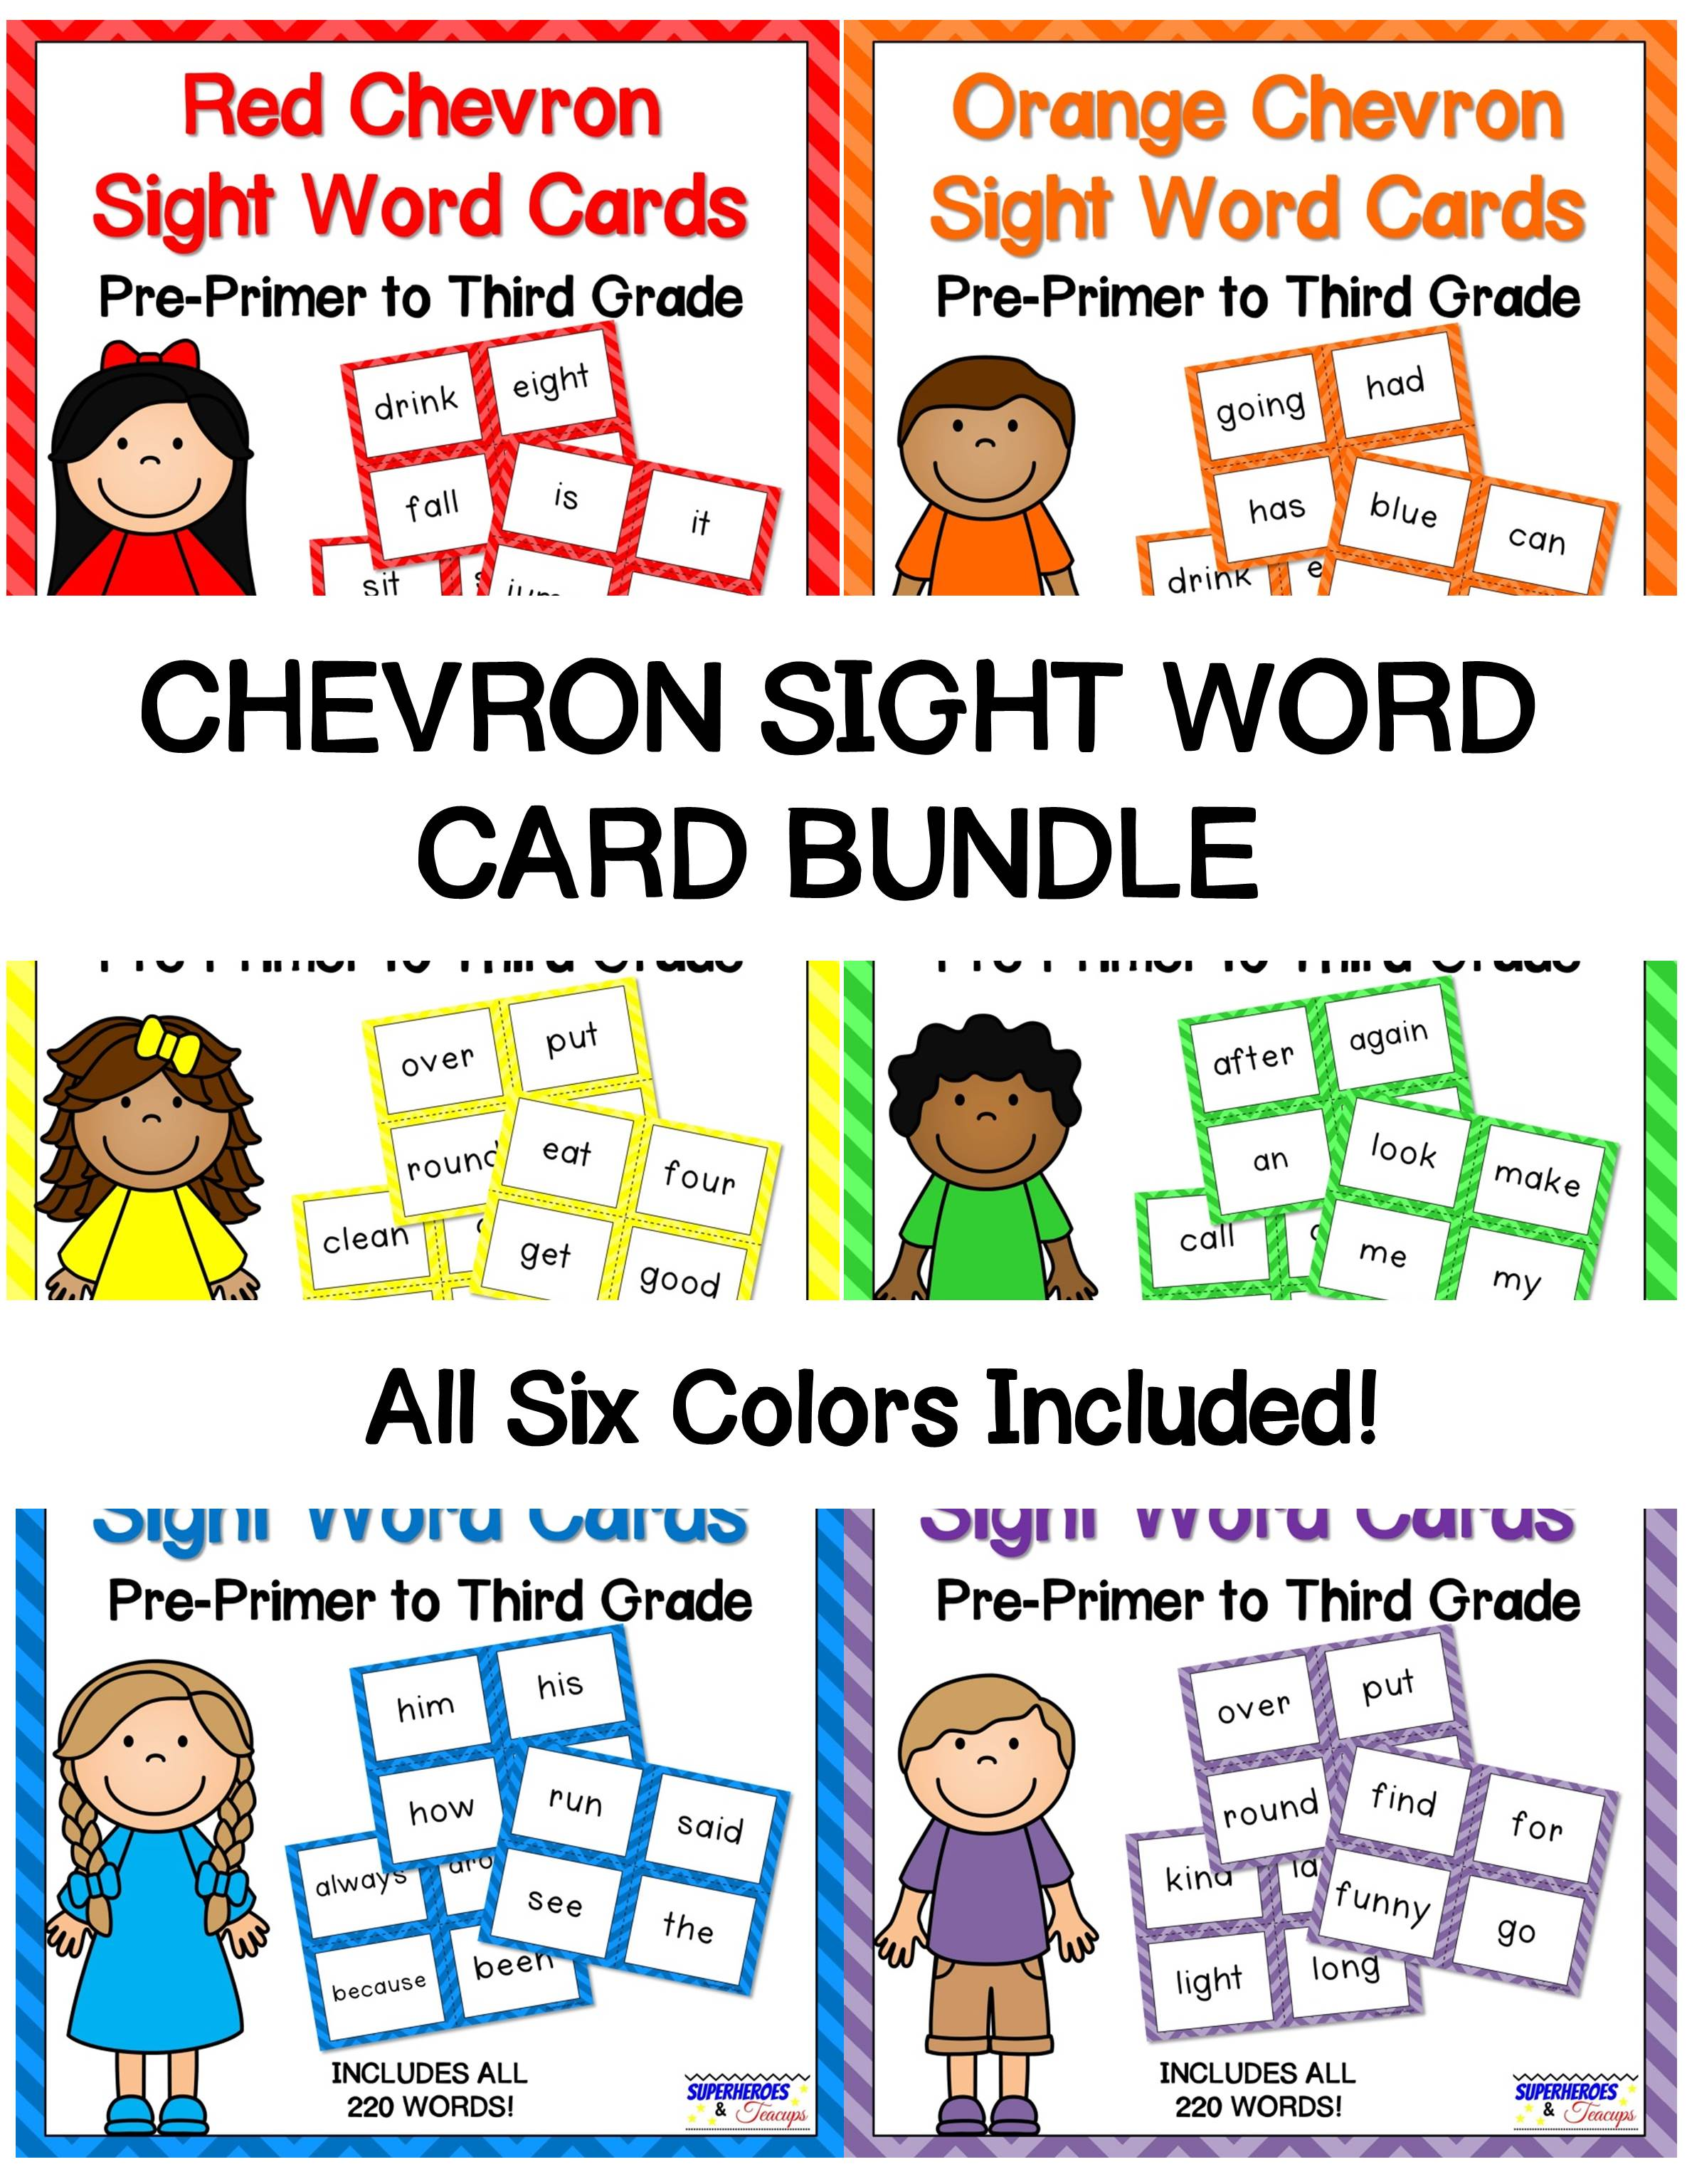 Printable sight word cards with a chevron theme. Includes 6 colors. Perfect for flash cards, word walls, and more! All 220 traditional Dolch words included. #sightwords #wordwall #literacy #superheroesandteacups